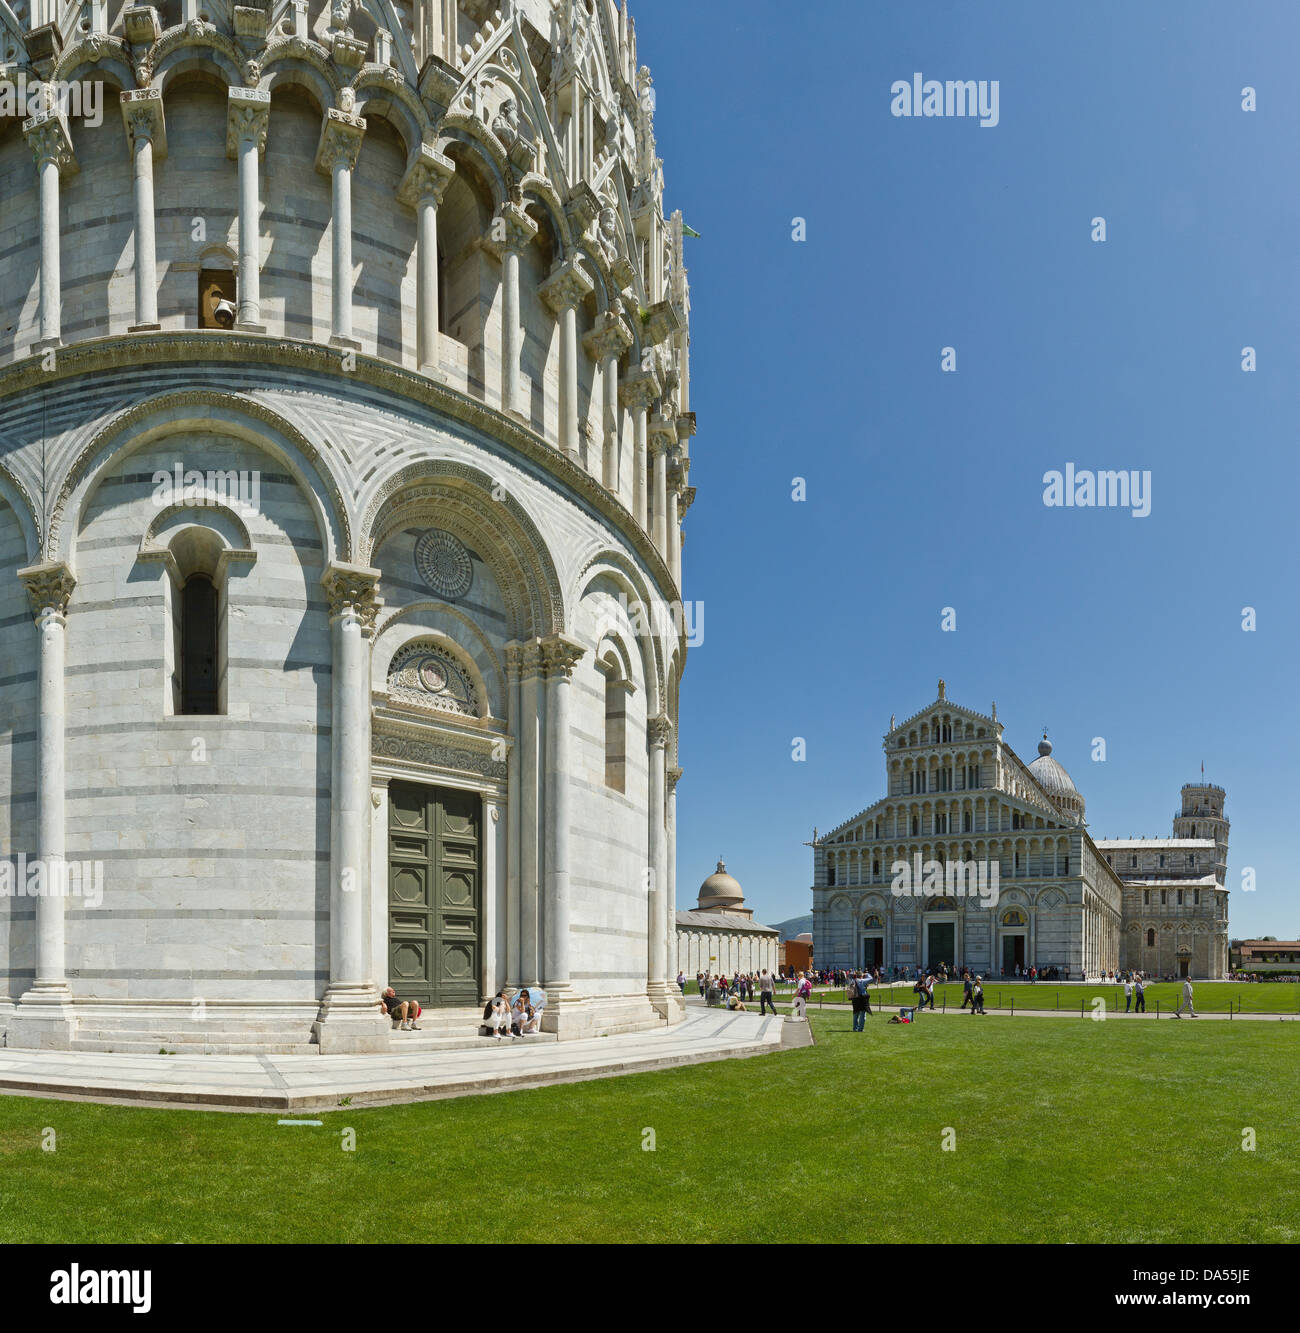 Pisa, Italy, Europe, Tuscany, Toscana, baptistry, skew tower, rook, tower, rook, cathedral, dome, cathedral, tourism - Stock Image